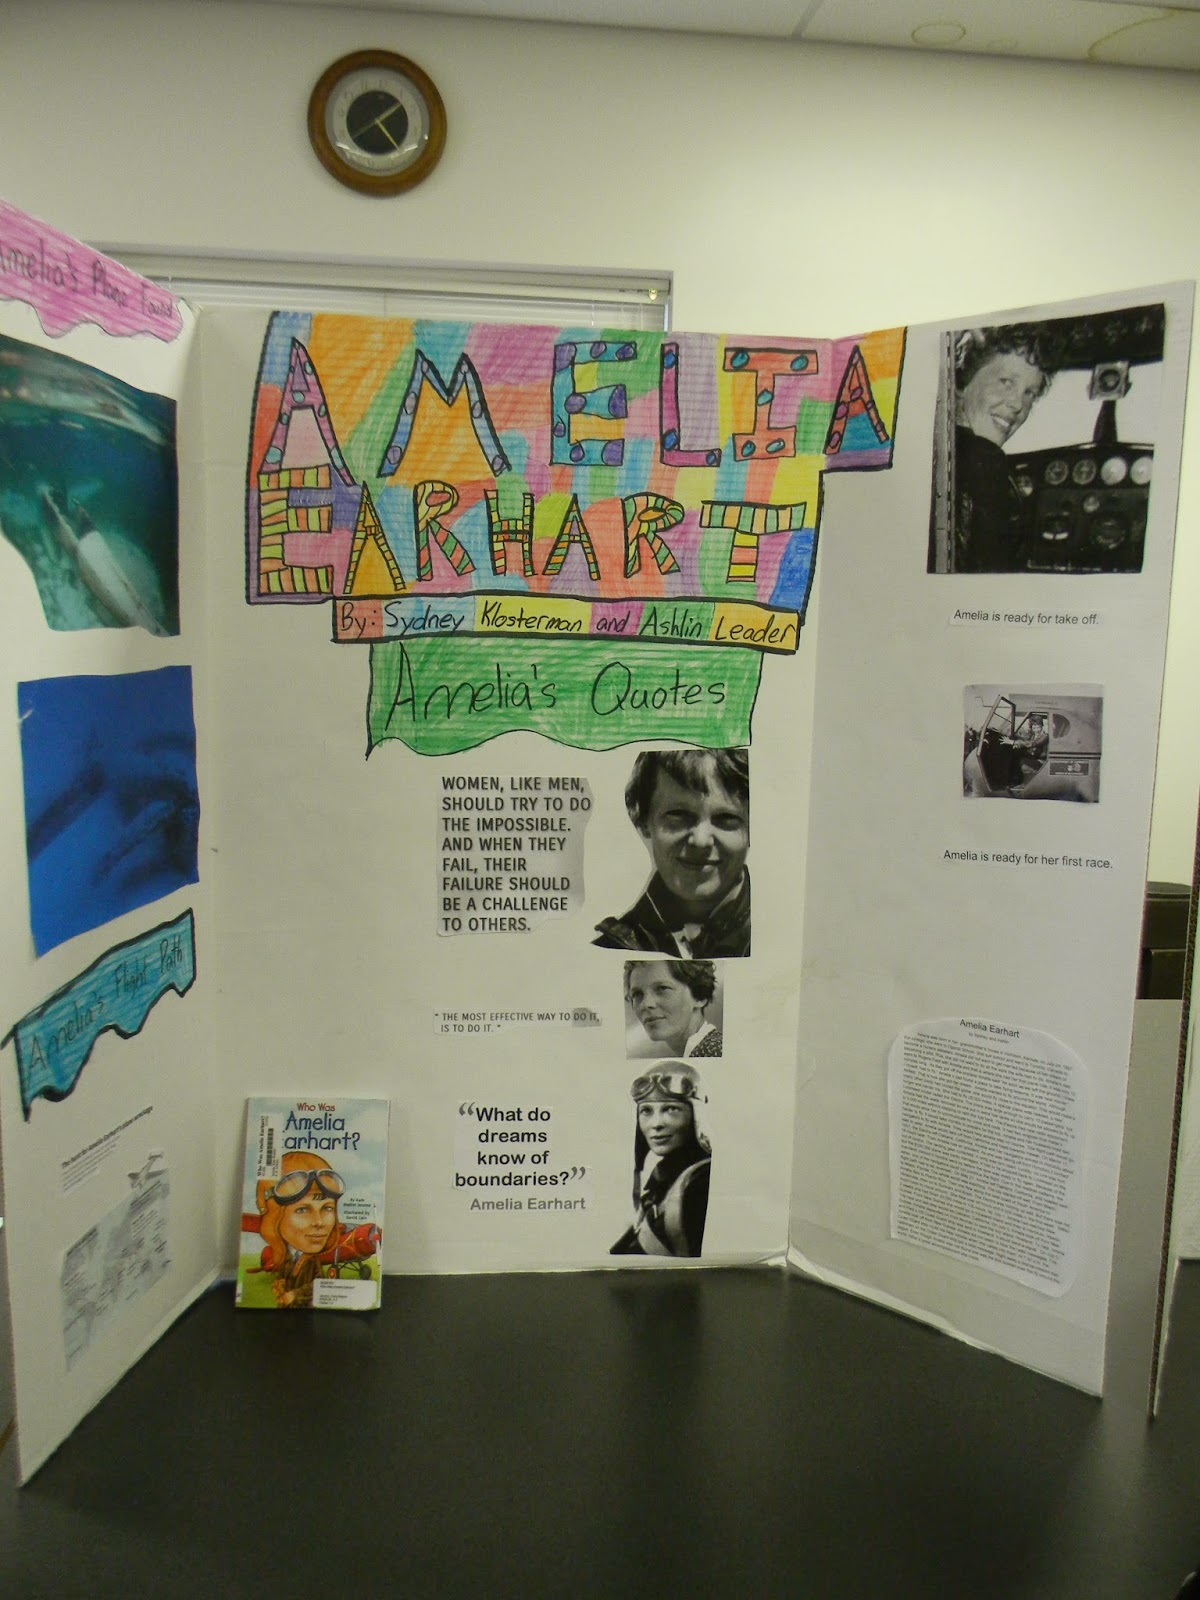 How to write a research paper on Amelia Earhart?